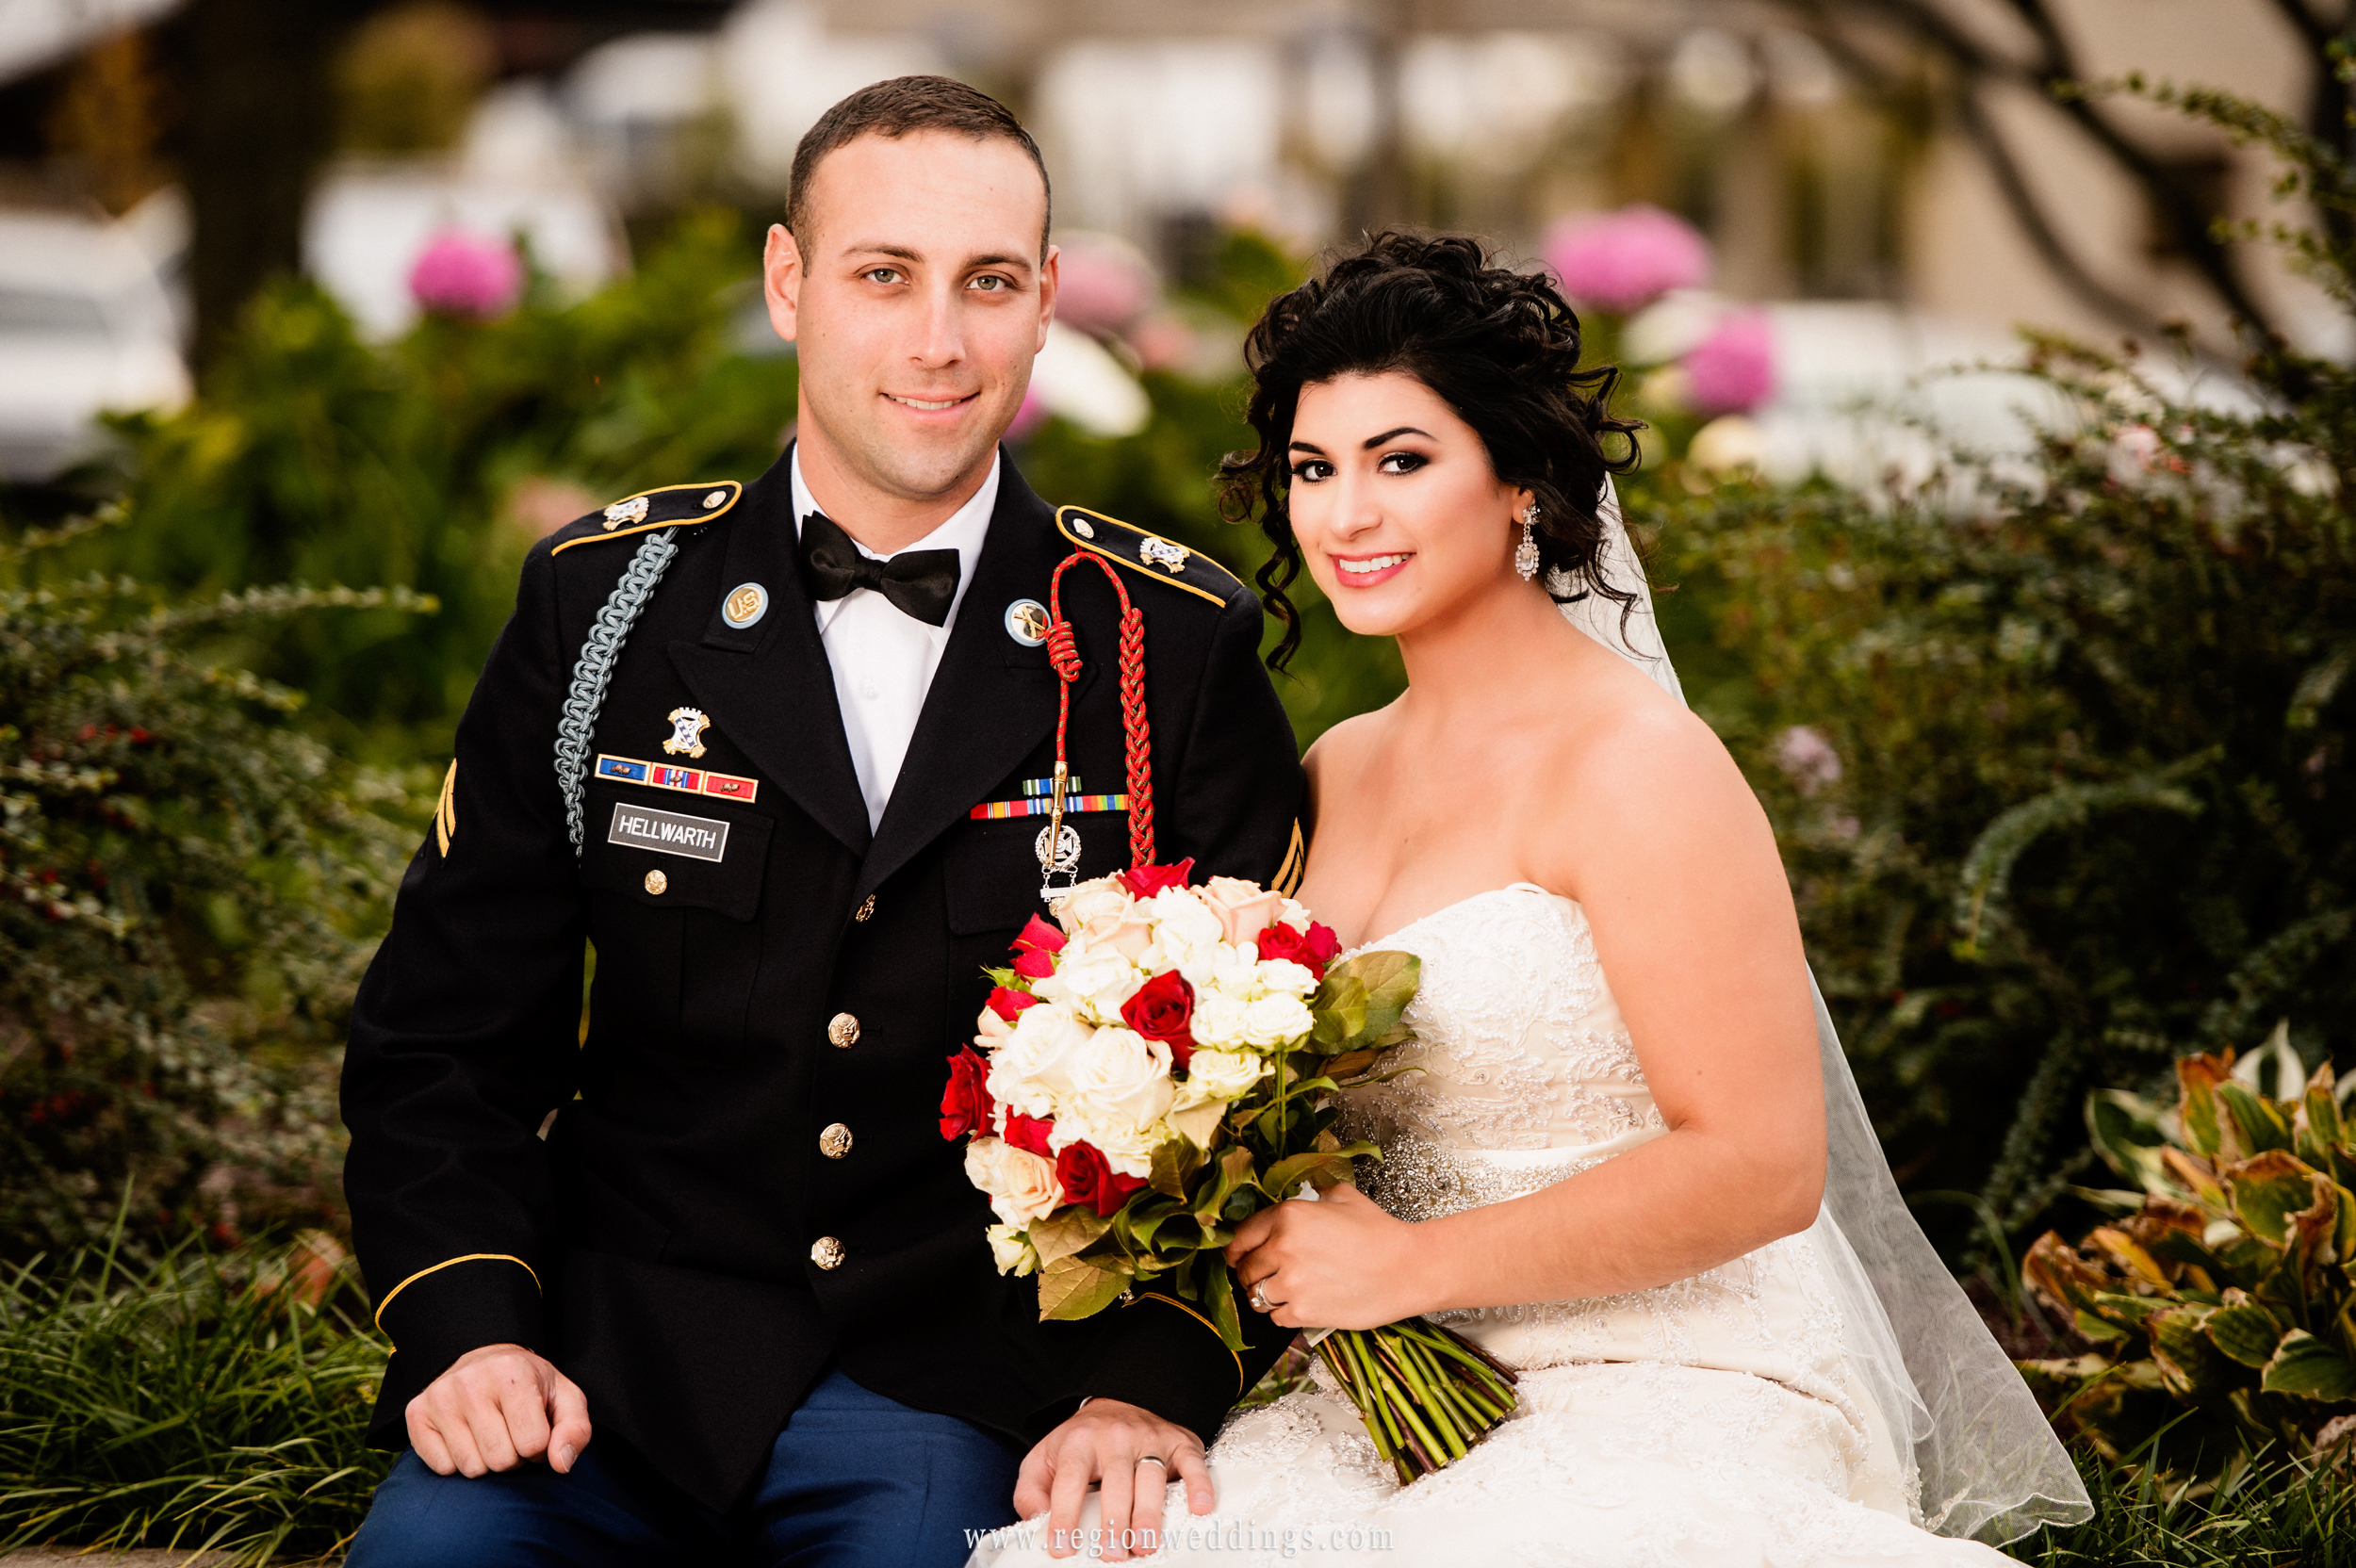 Military groom and his bride in downtown Valparaiso.